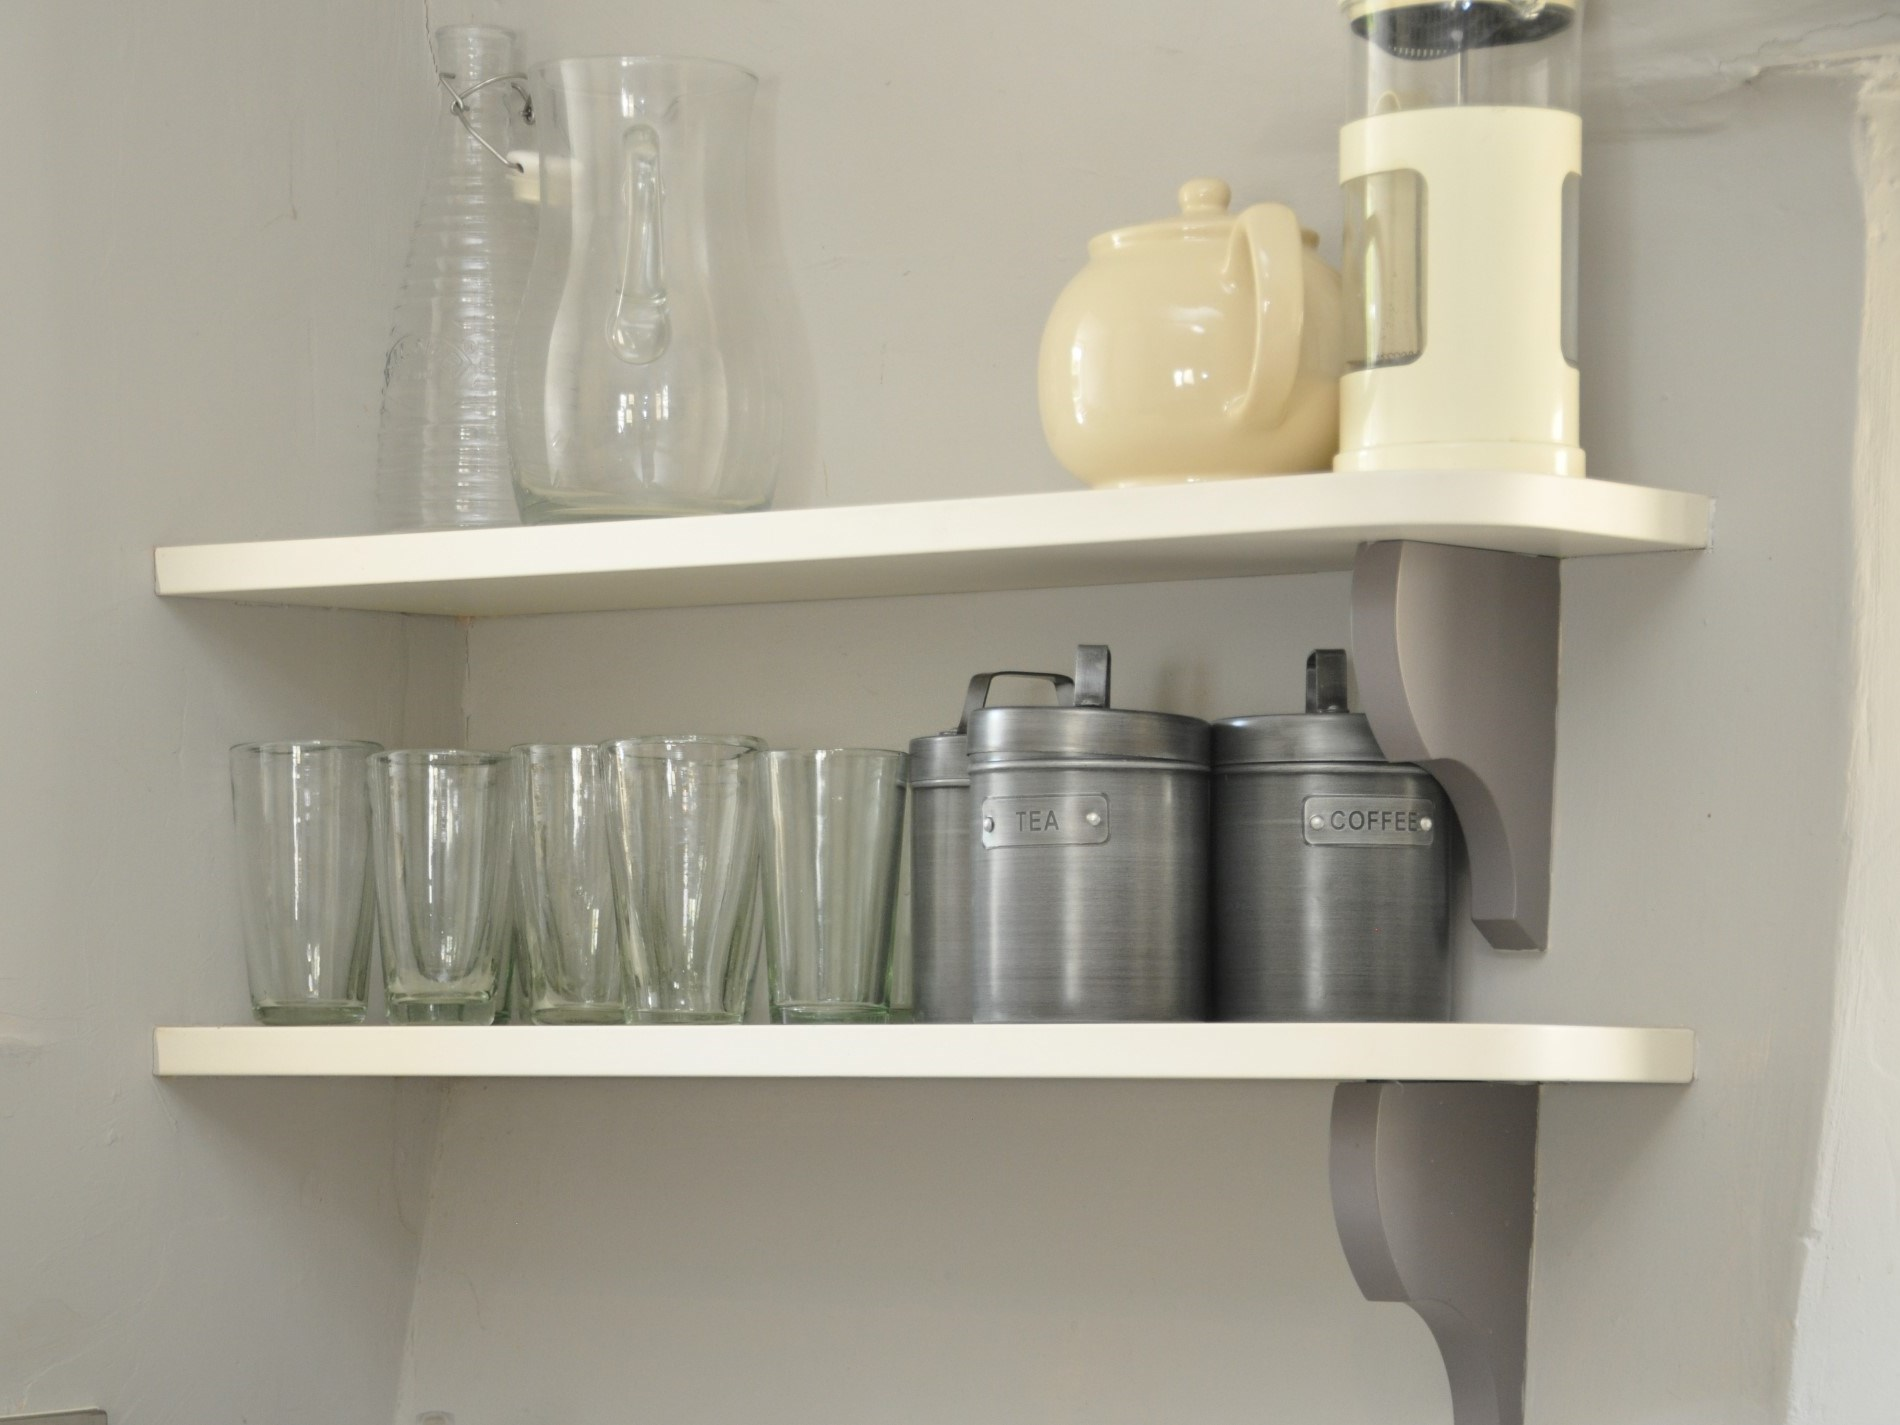 Simple shelving for your tea and coffee